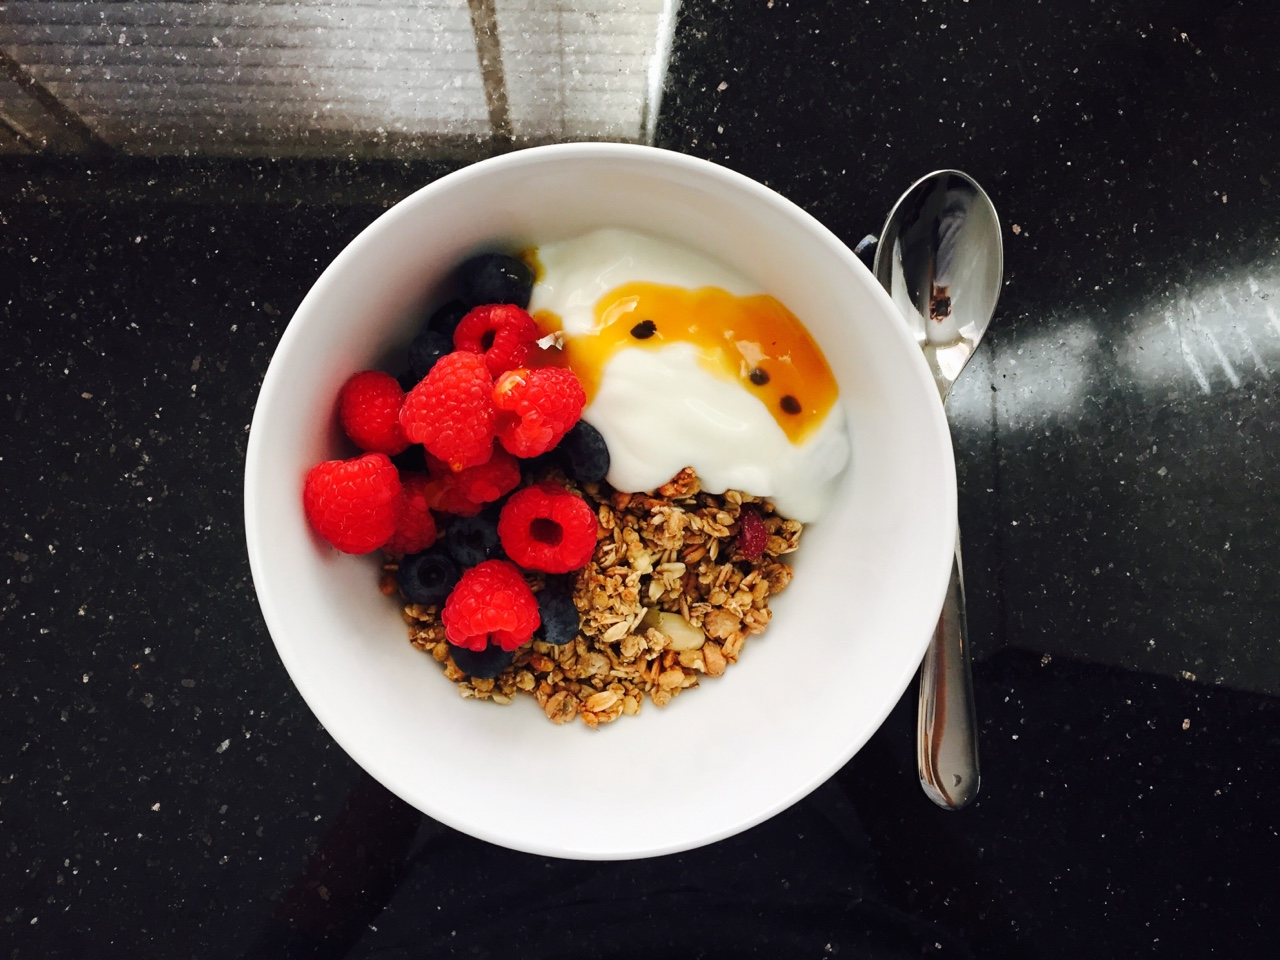 Berry Breakfast Pumpkin seed and almond granola with berries, yogurt and a little passionfruit- too good.  //SHE